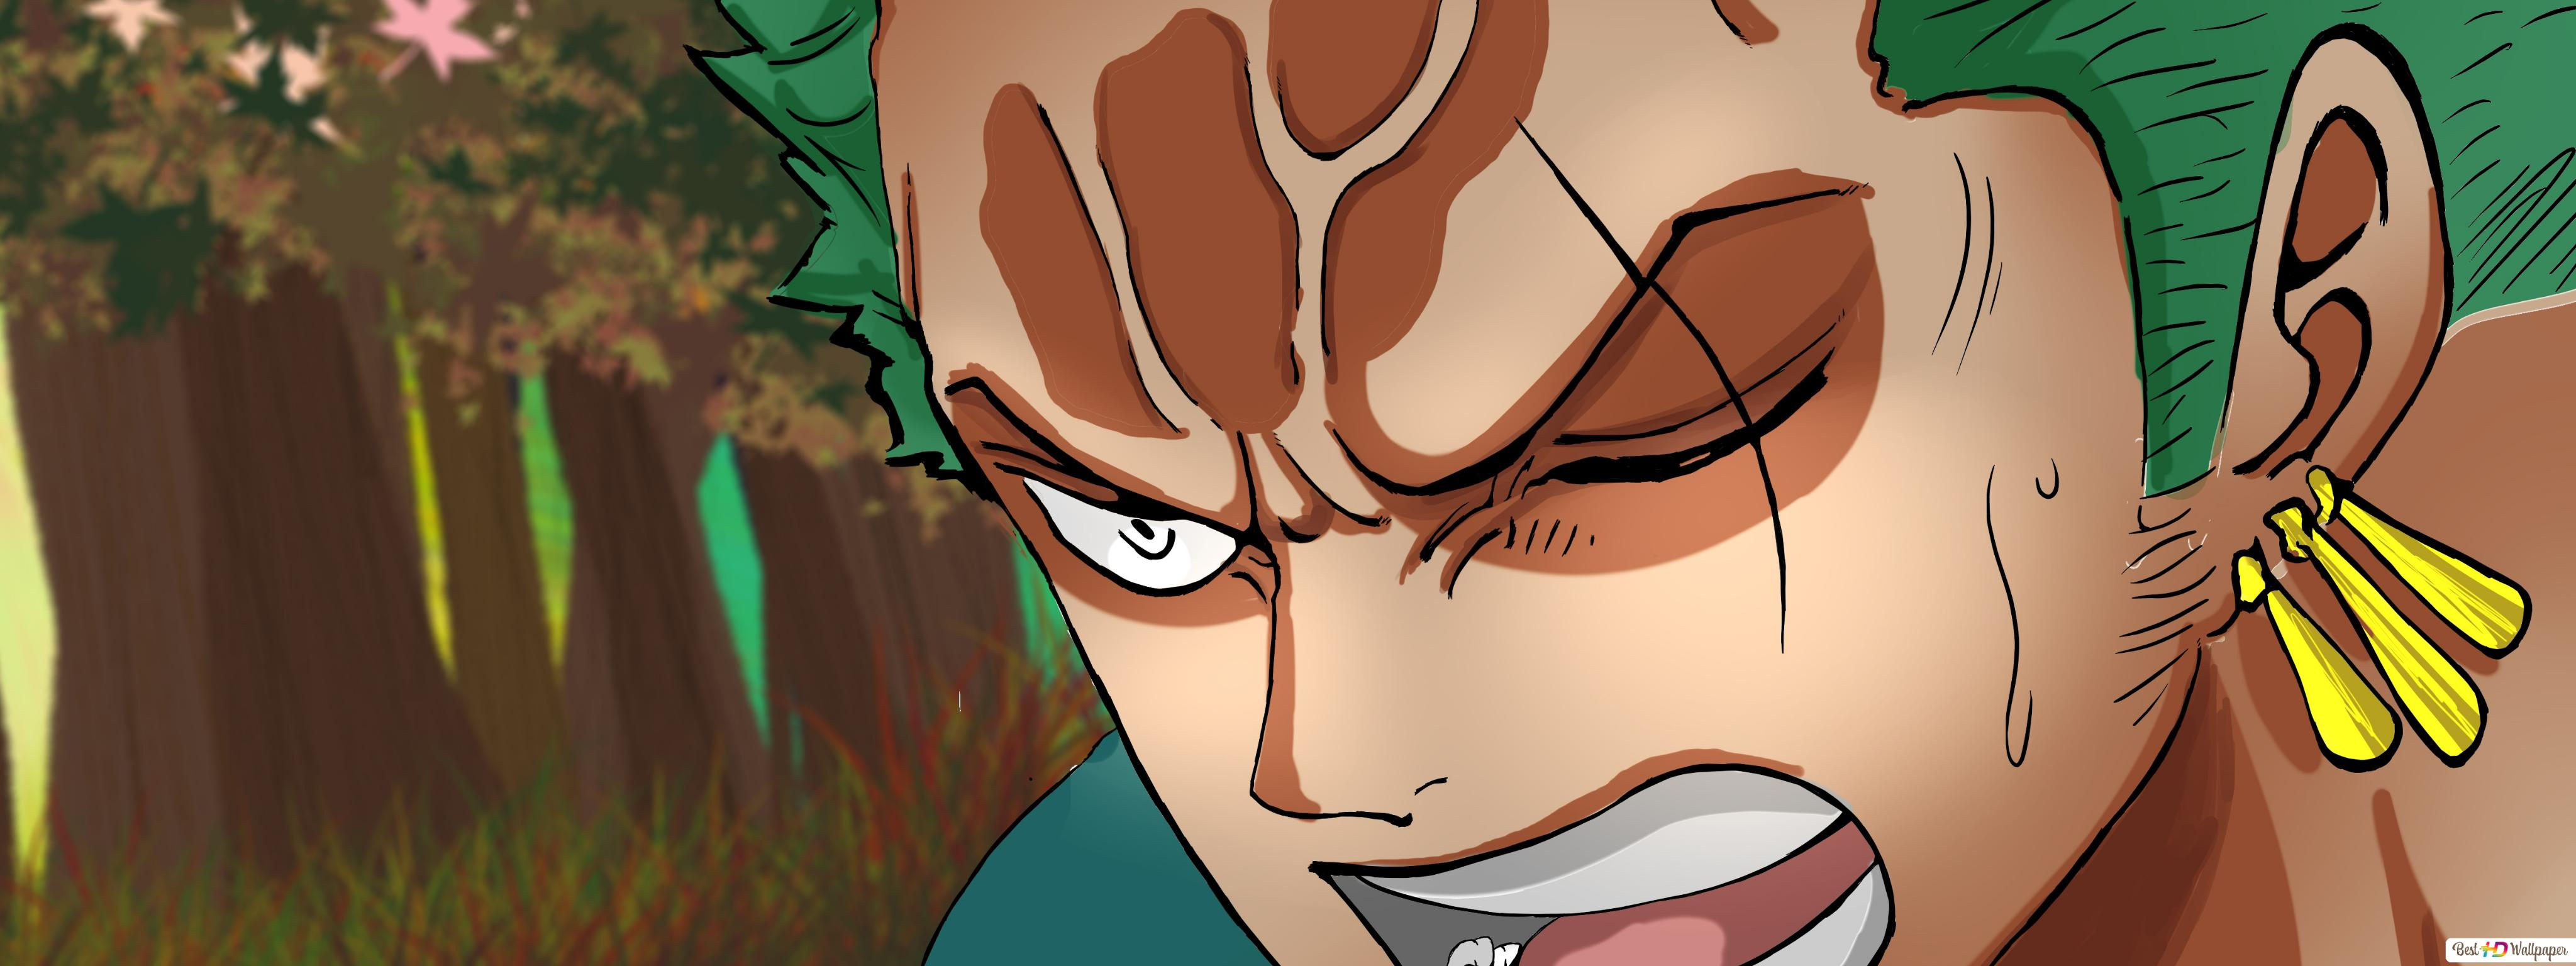 One Piece Roronoa Zoro Wano Kuni Arc Hd Wallpaper Download